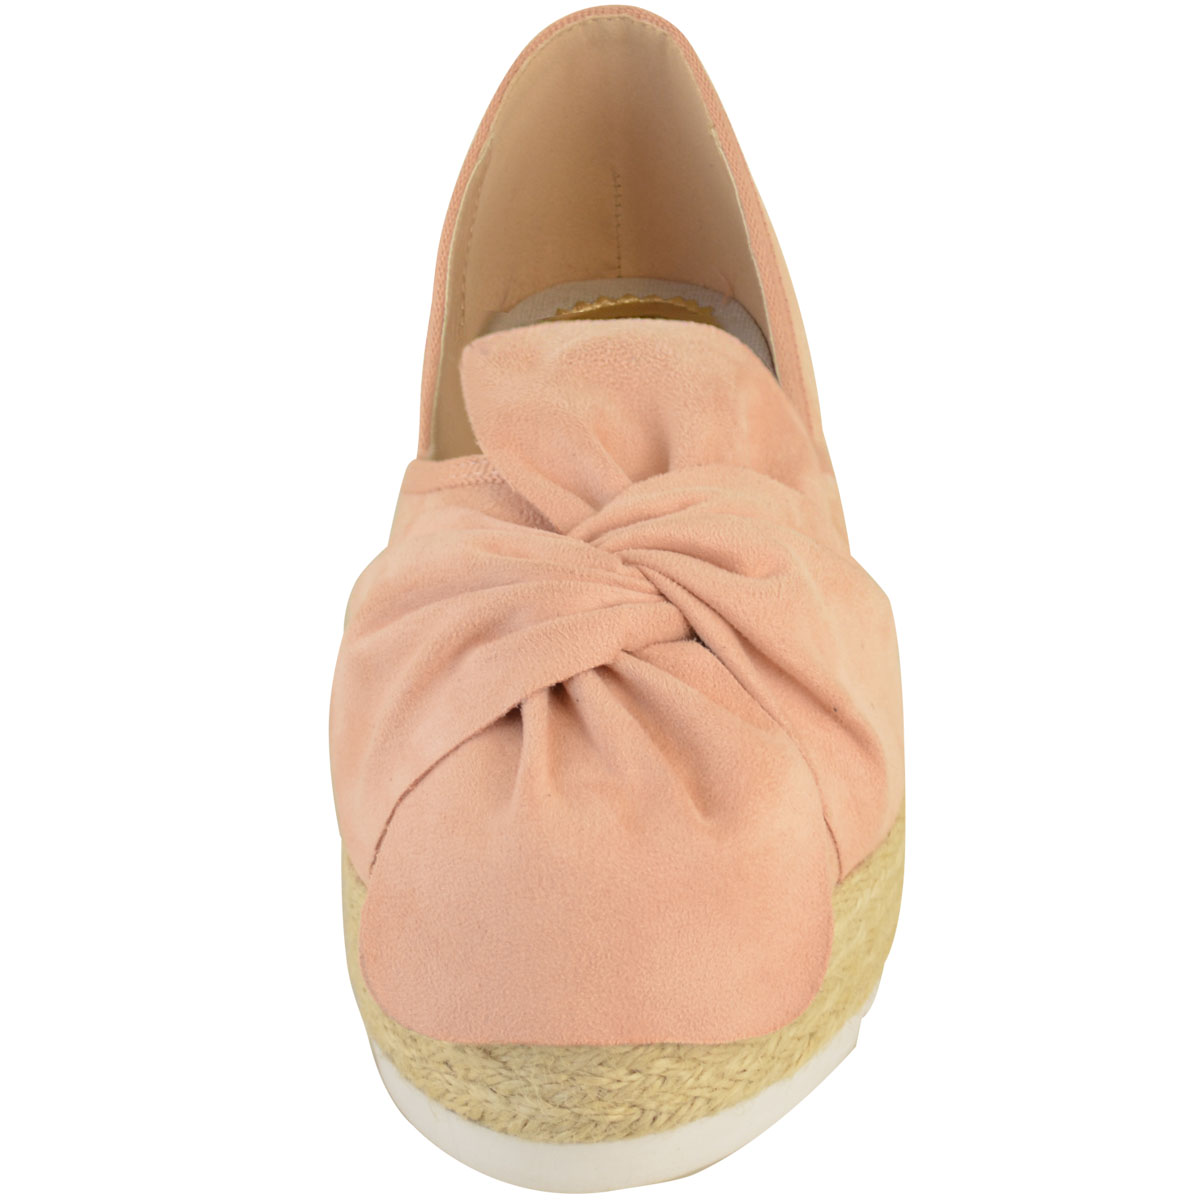 Womens-Ladies-Espadrilles-Flat-Pom-Pom-Sandals-Slip-On-Strappy-Comfy-Size-Shoes thumbnail 45